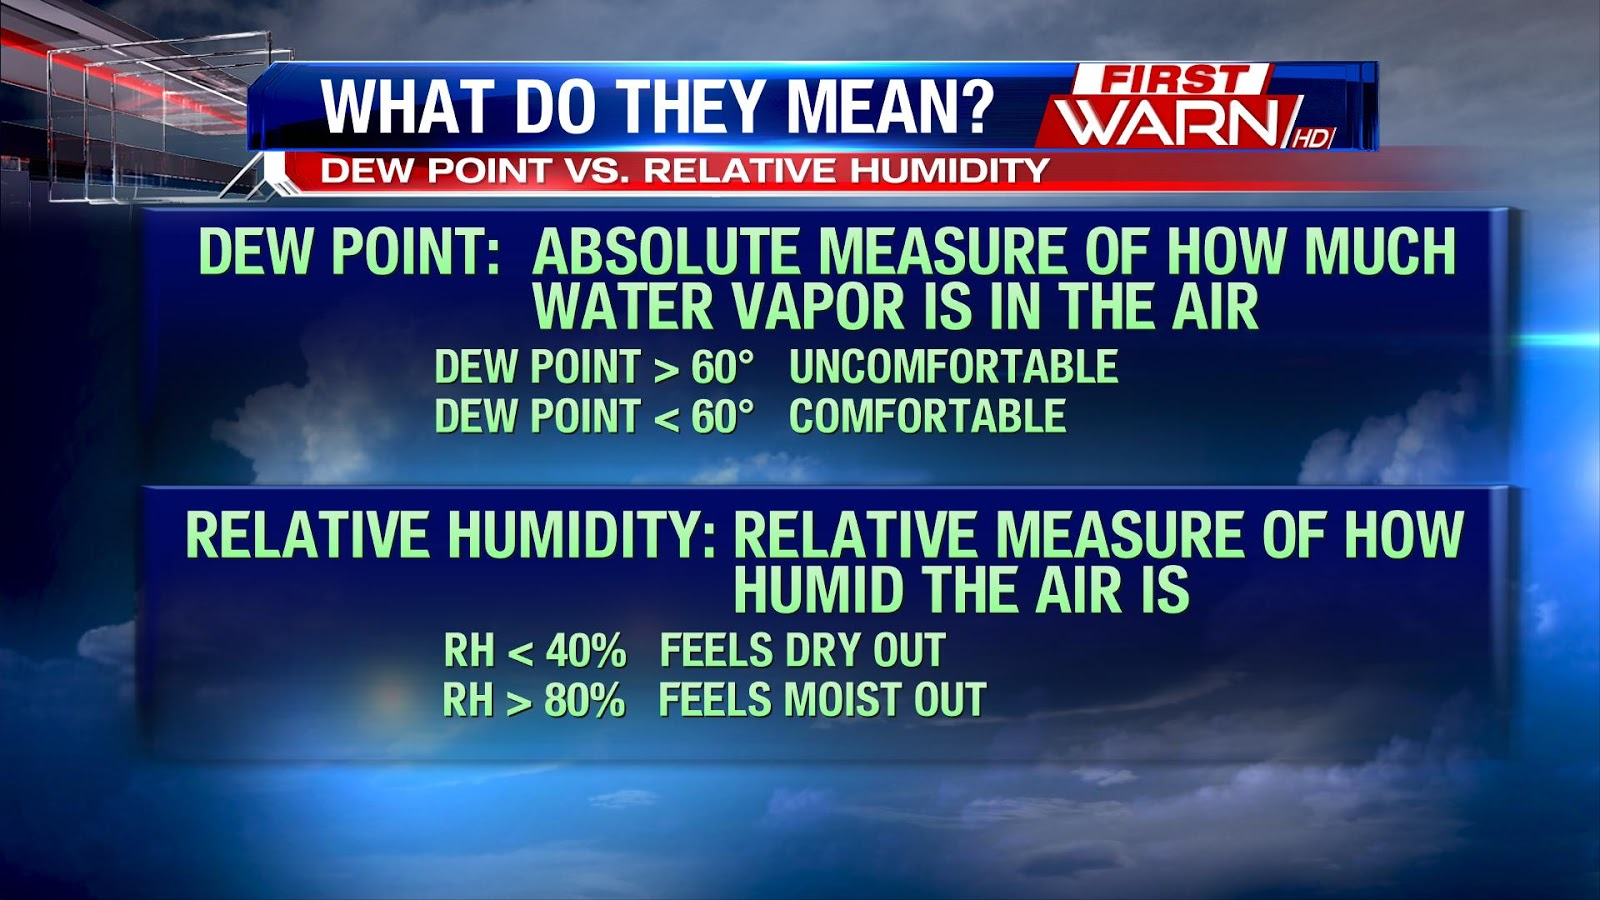 First Warn Weather Team Knowing The Difference Between Dew Point